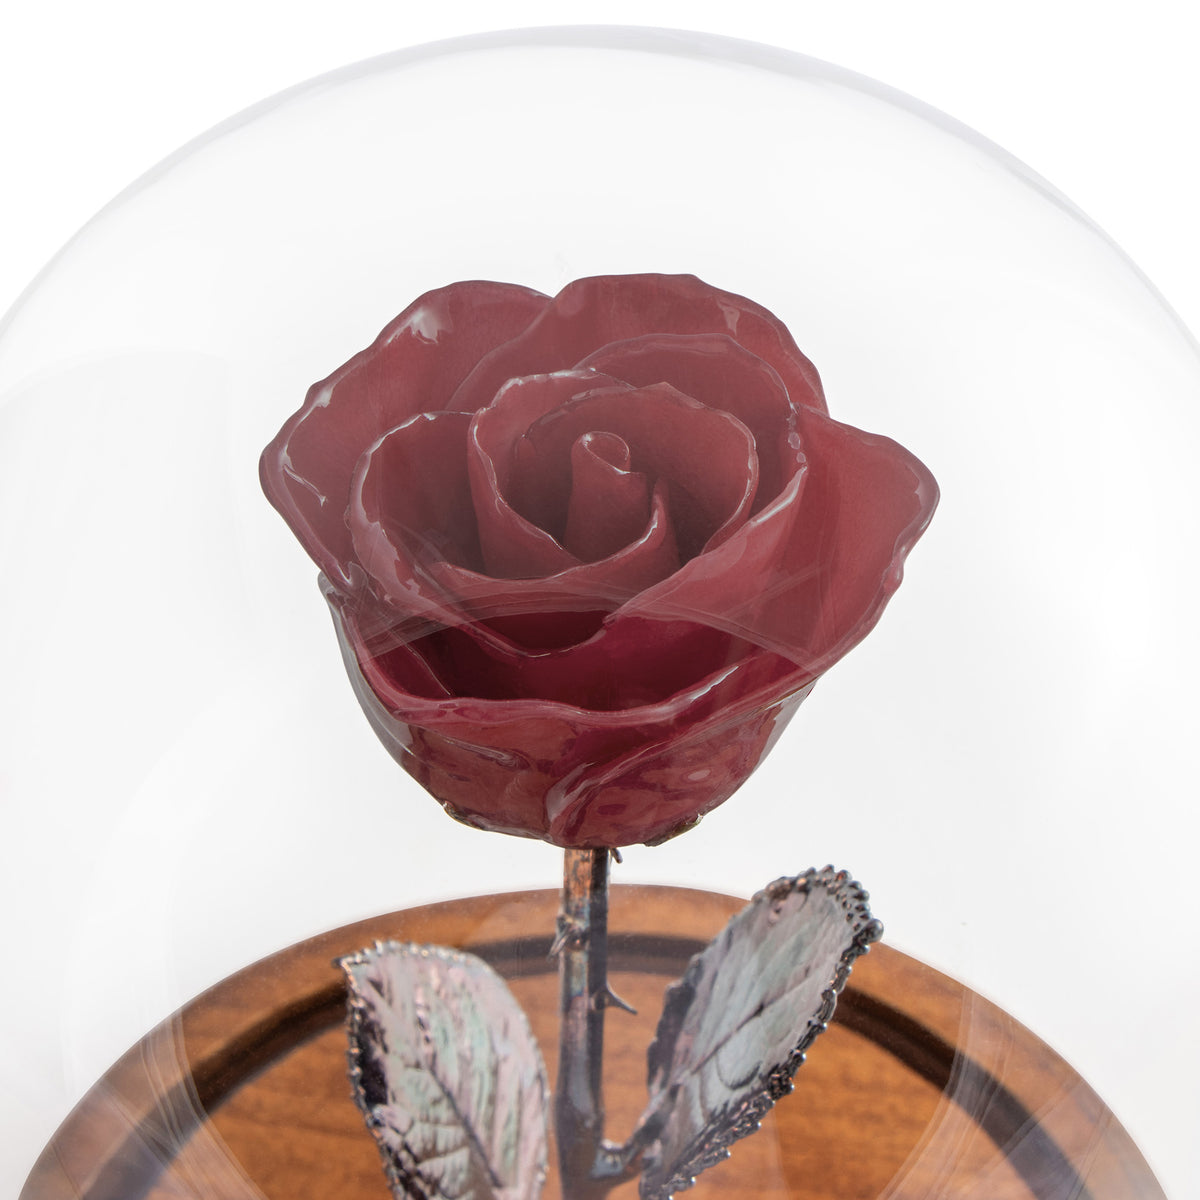 Burgundy Enchanted Rose (aka Beauty & The Beast Rose) with Patina Copper Stem Mounted to A Hand Turned Solid Wood Base under a glass dome.